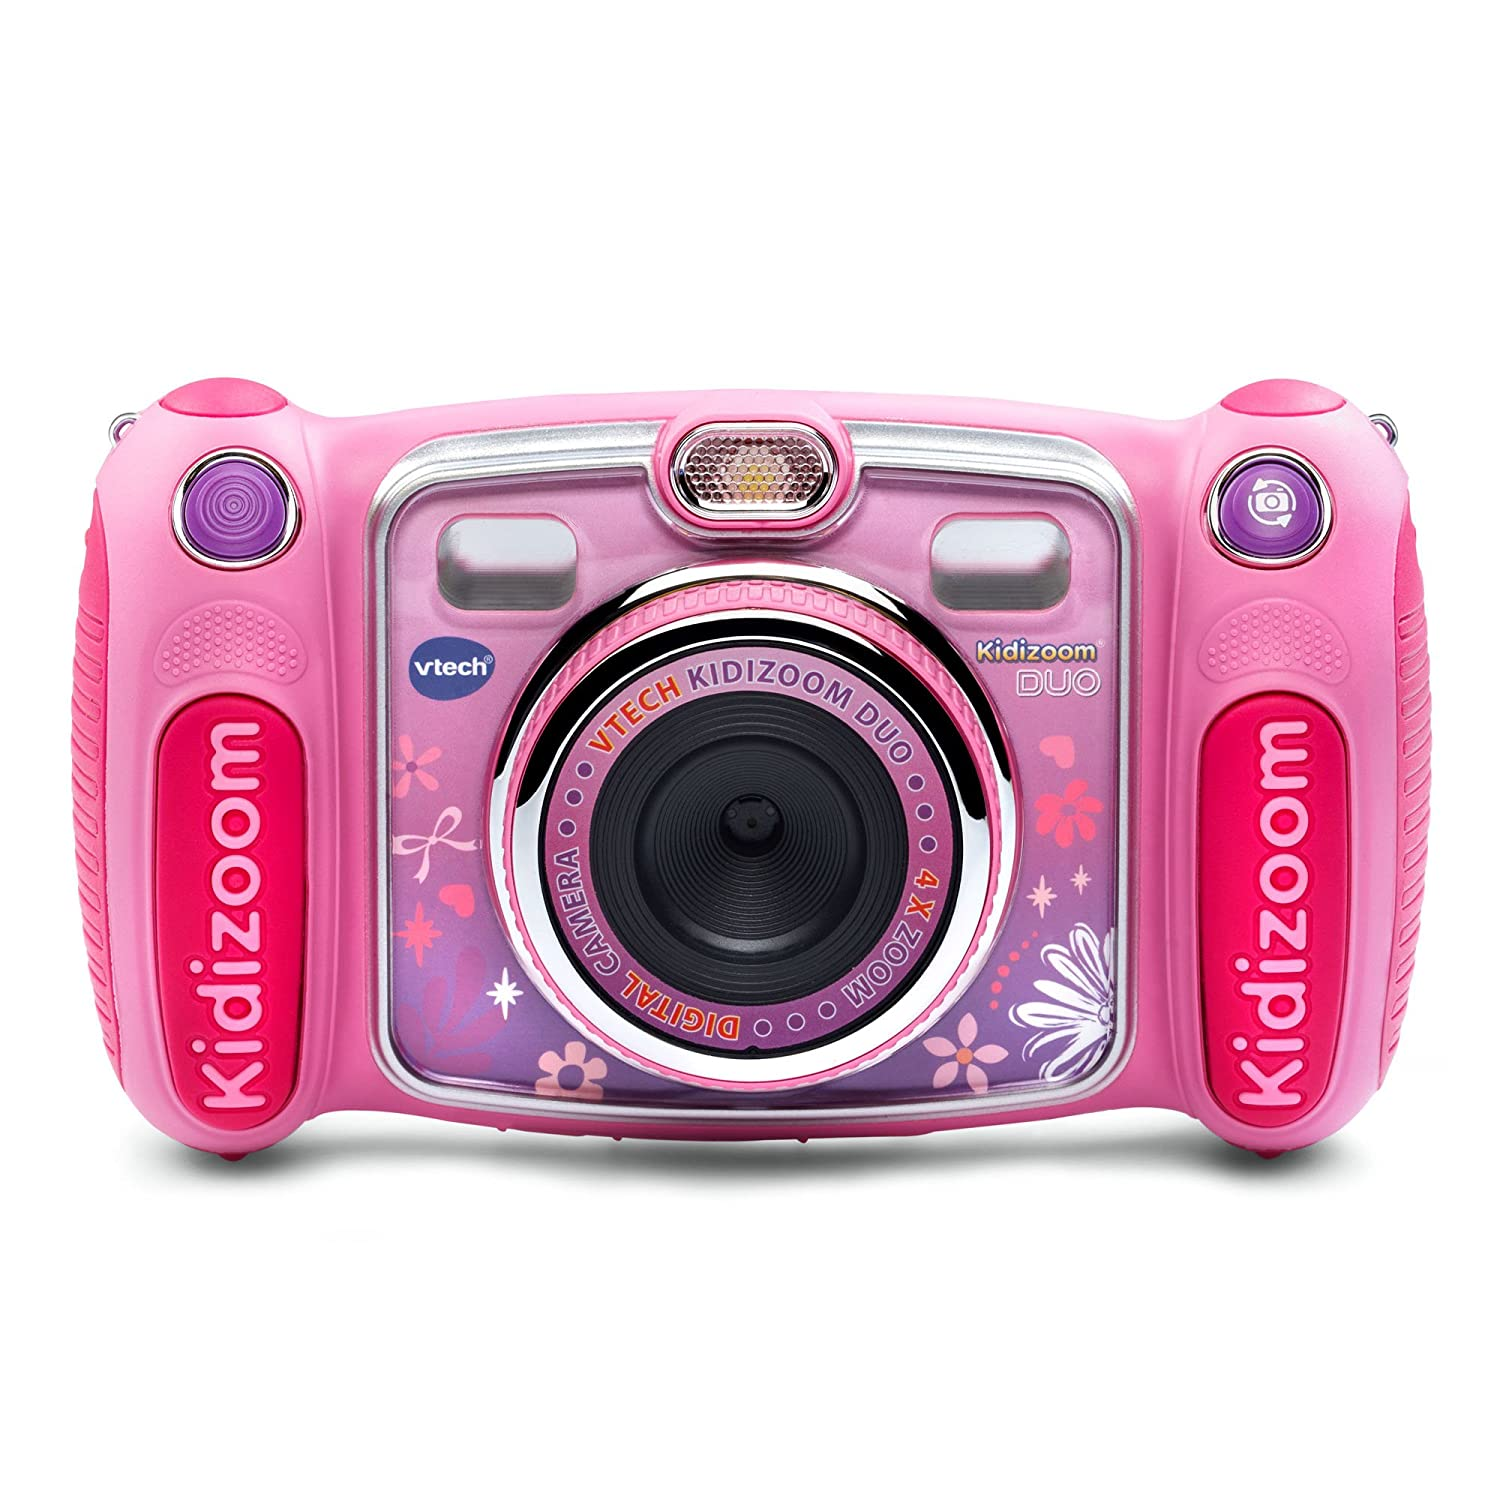 Camera Vtech Kids Camera amazon com vtech kidizoom duo camera pink online exclusive toys games